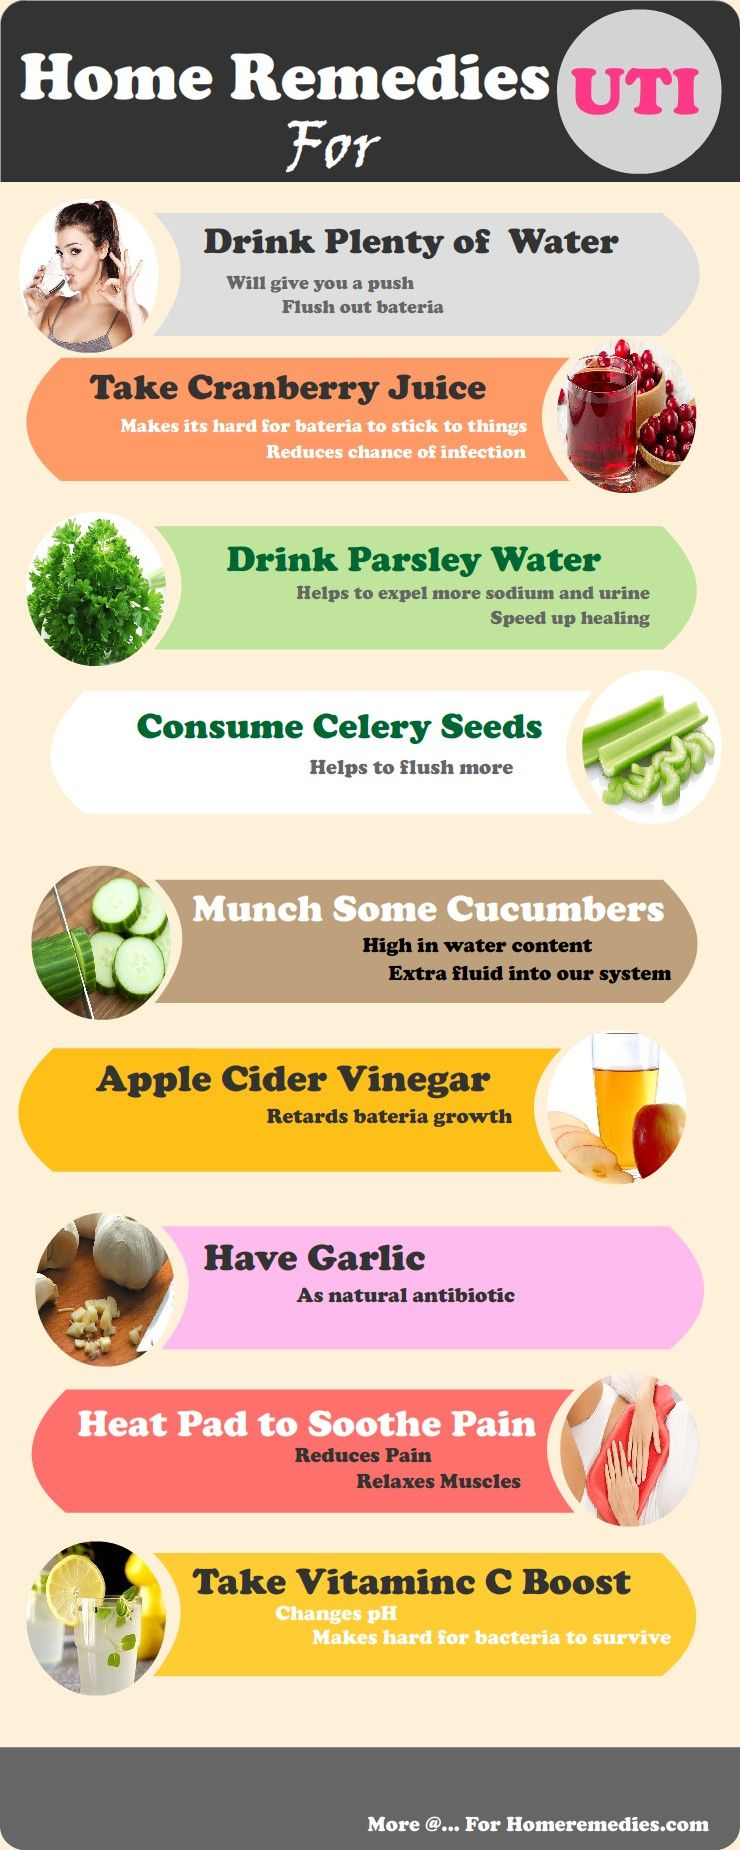 How To Get Rid Of Uti Natural Home Remedies For Uti Drink Water Celery Parsley Cucumber Cranber Uti Remedies Home Remedies For Uti Natural Home Remedies